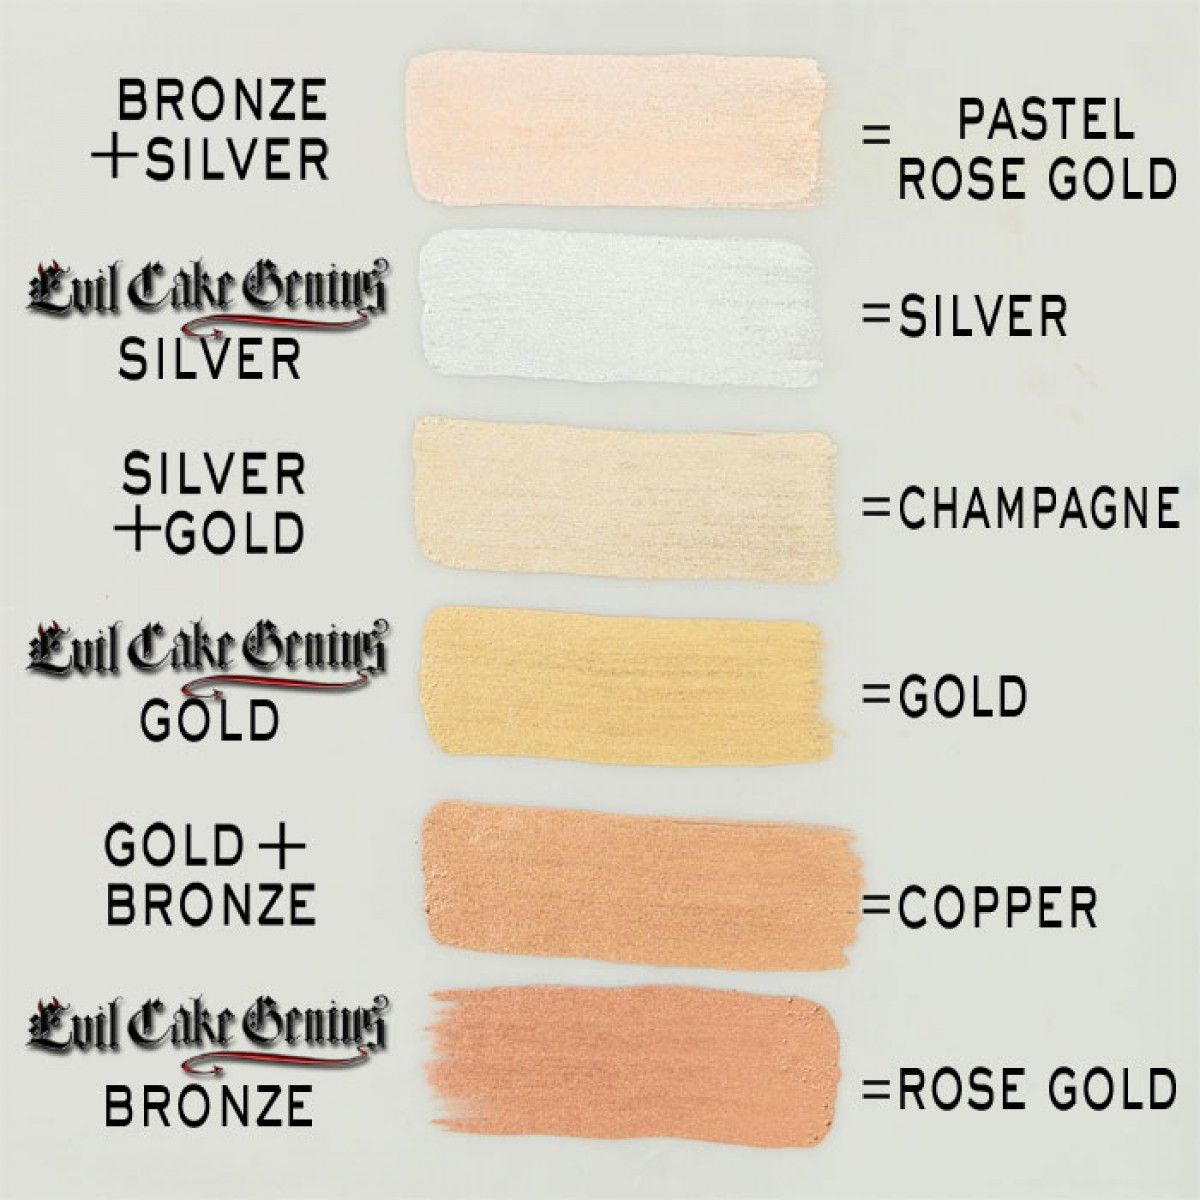 Evil Cake Genius Metallic Powder Mixing Guide  3 colors make